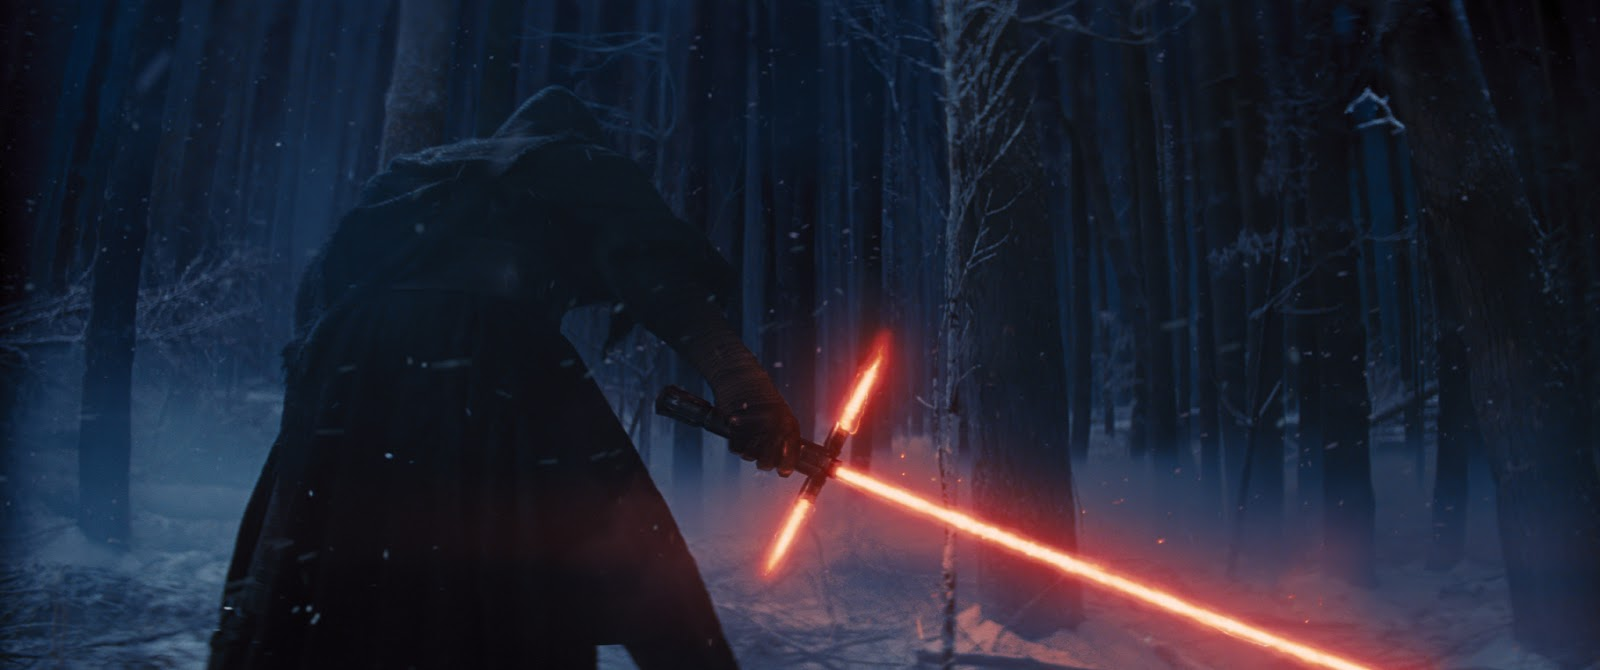 Star Wars: The Force Awakens Darth Vader with cross Light Sabre